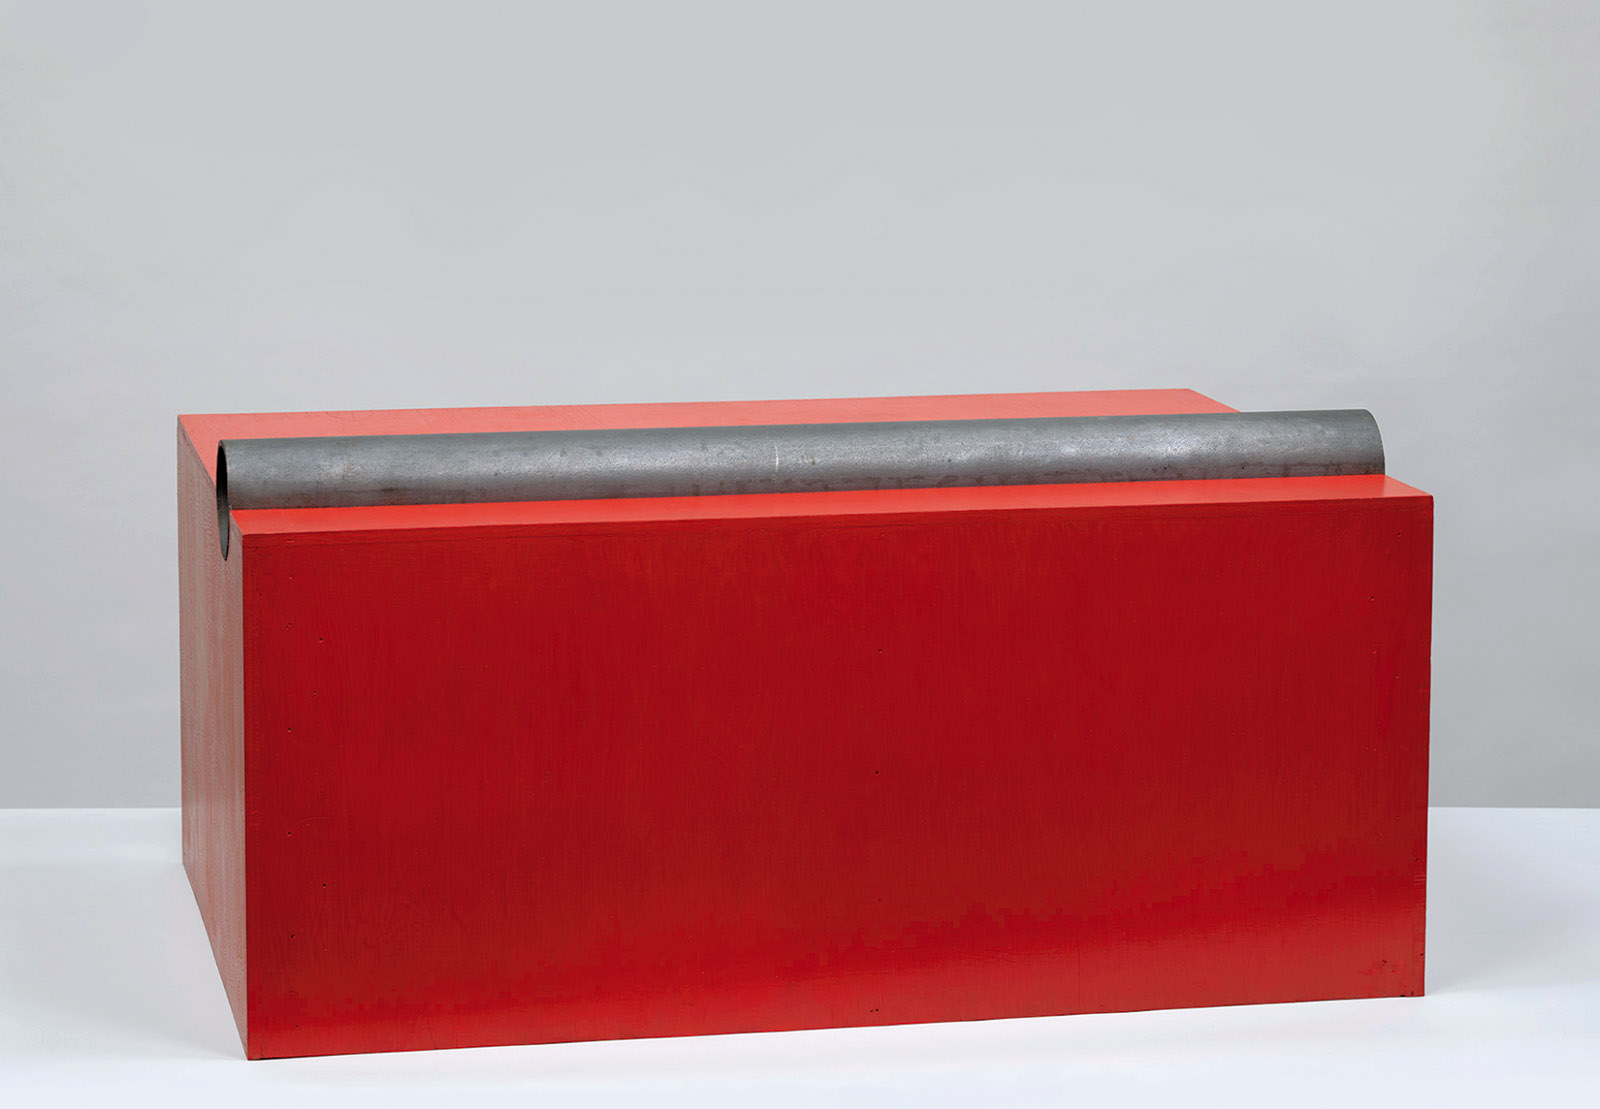 Untitled (DSS 39), oil on wood with iron pipe, 1963; by Donald Judd